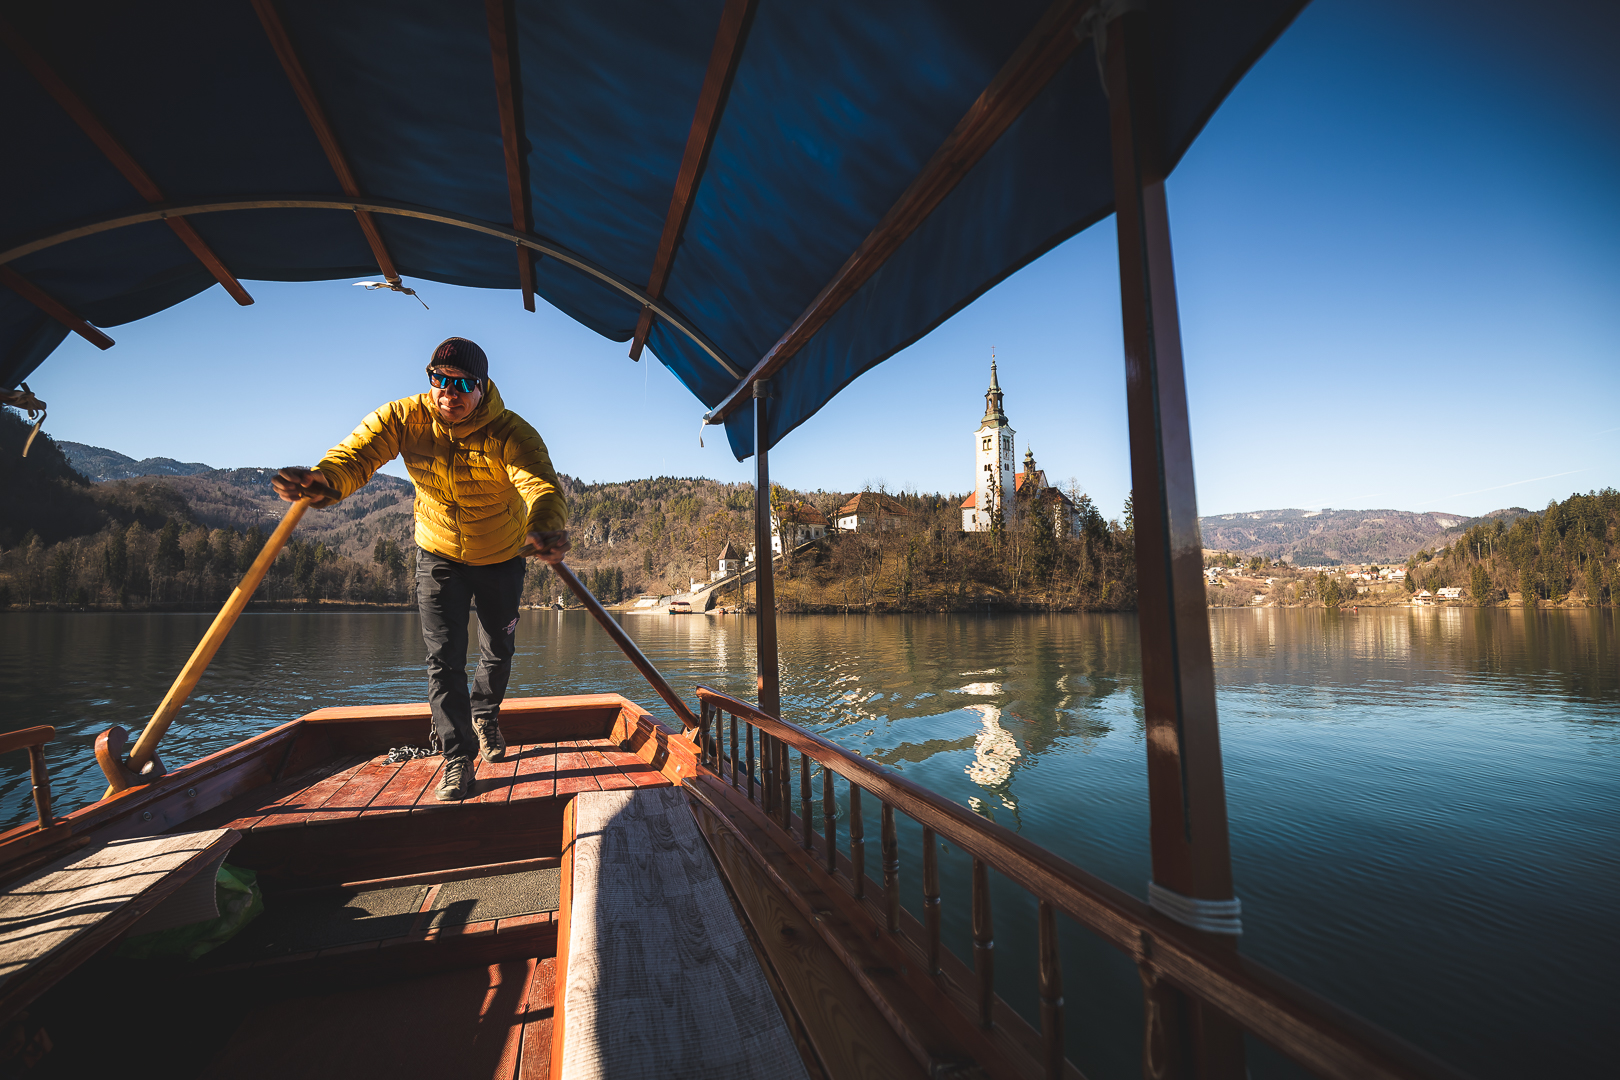 A traditional Pletna boat ride in Lake Bled.